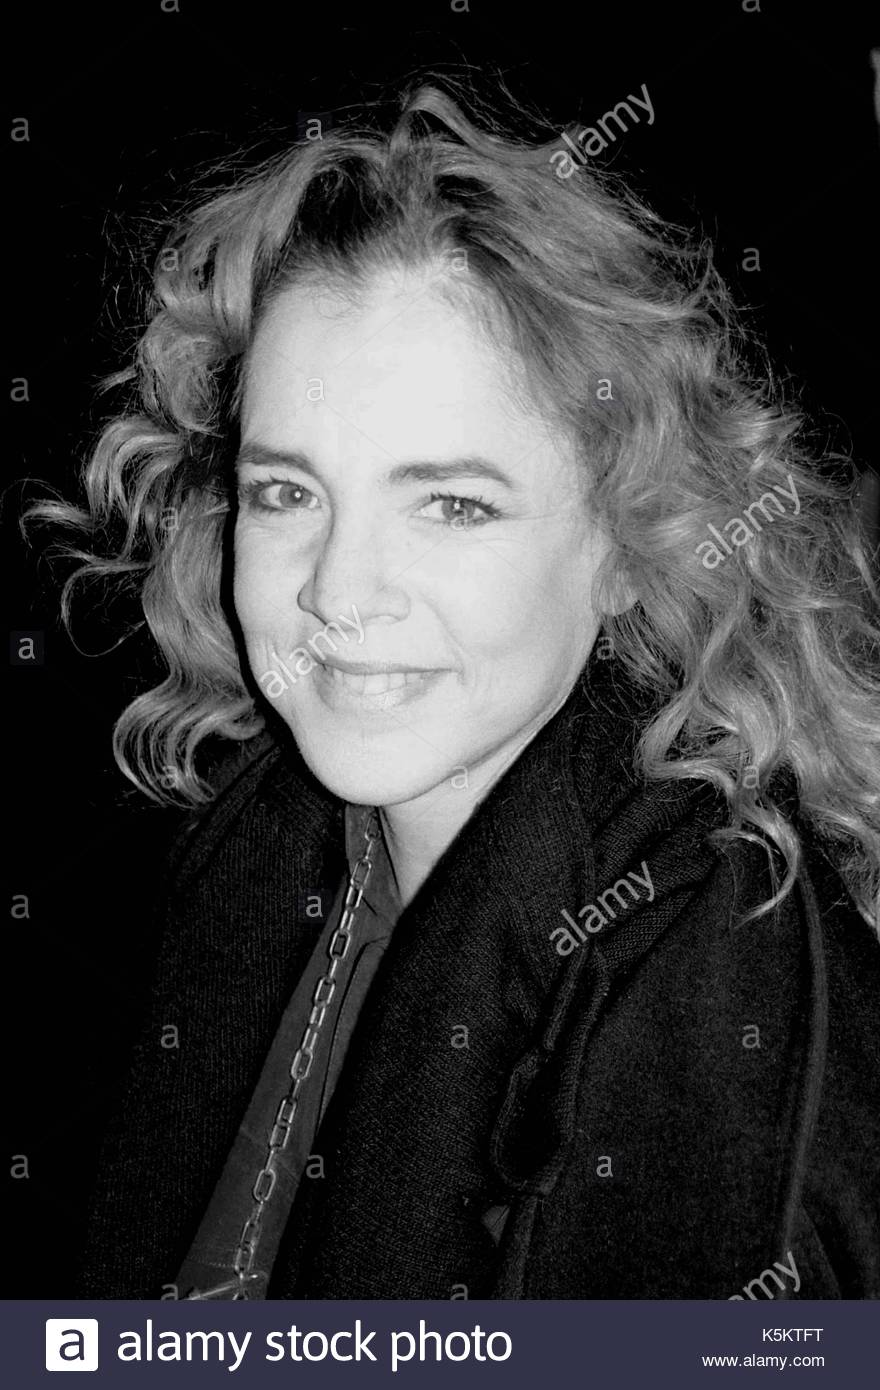 Stockard Channing in 1995. Stockard Channing sightings in NYC 1995 and 1997. - Stock Image